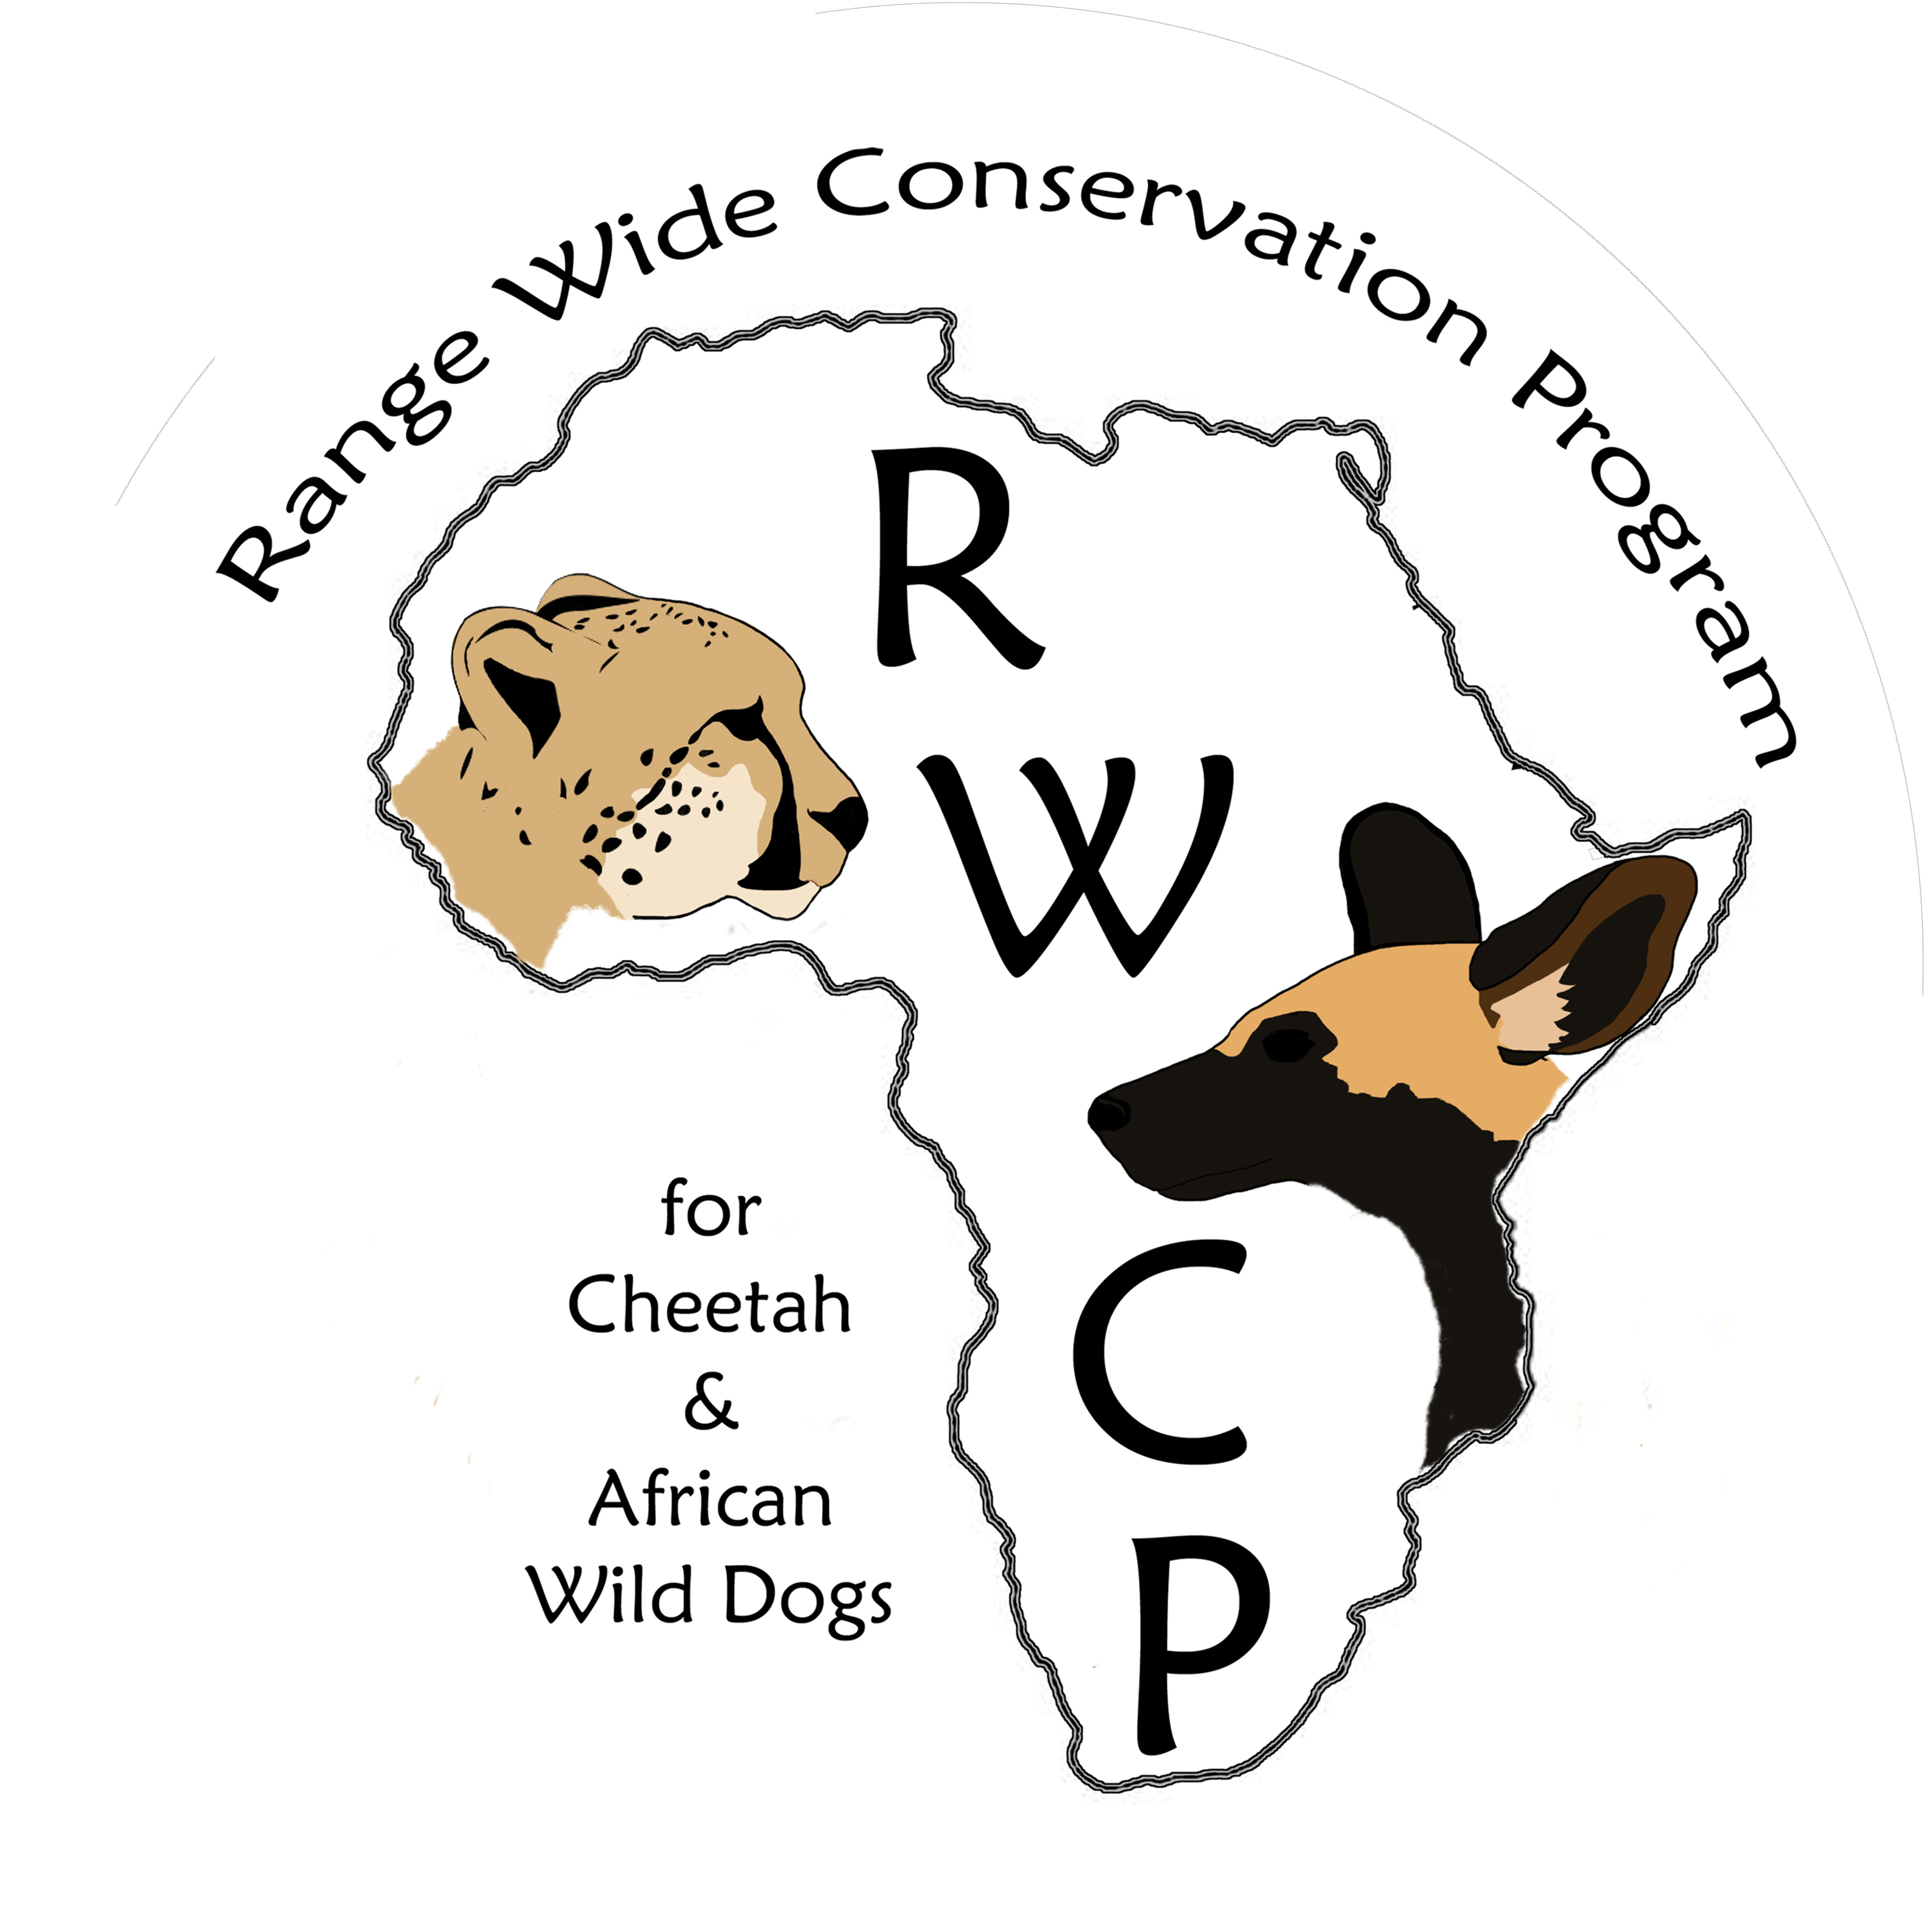 Range Wide Conservation Program for Cheetah and African Wild Dogs